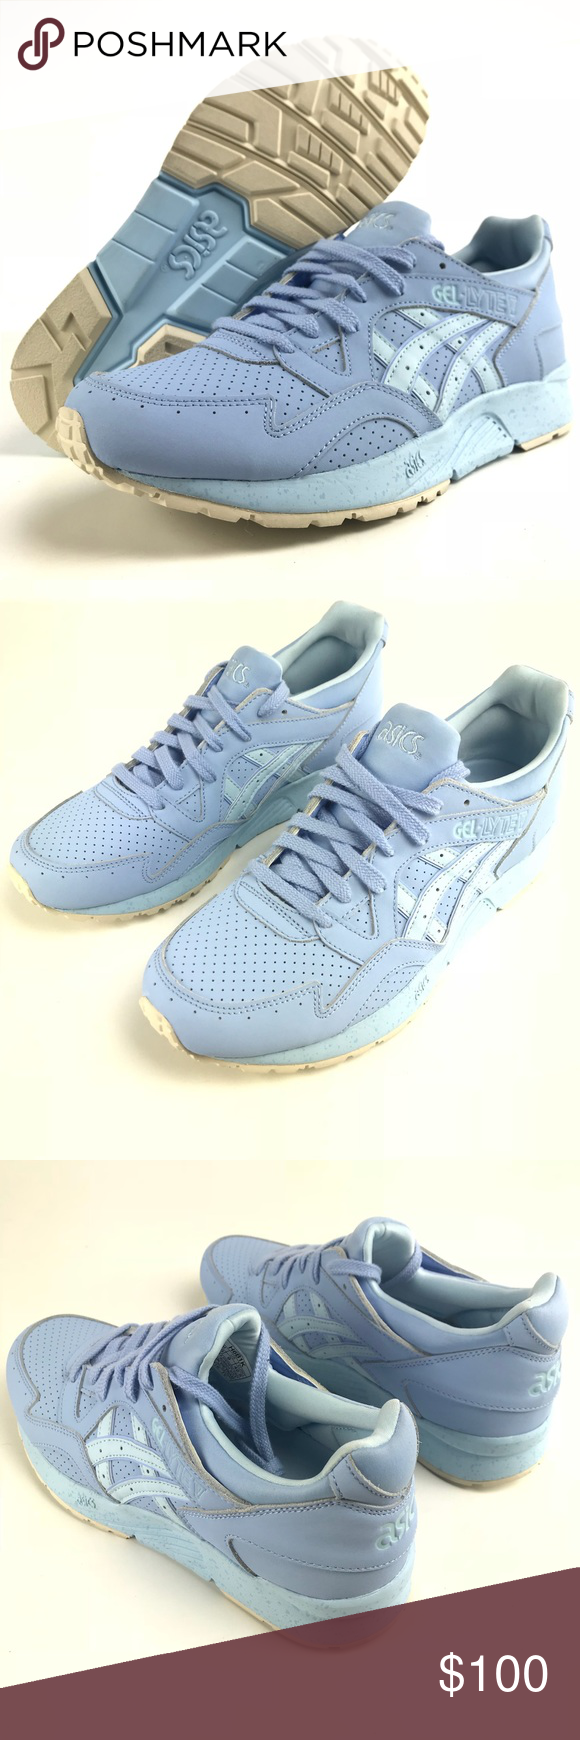 ASICS GEL LYTE V 5 Running Shoes Light Blue Tan Speckle SZ